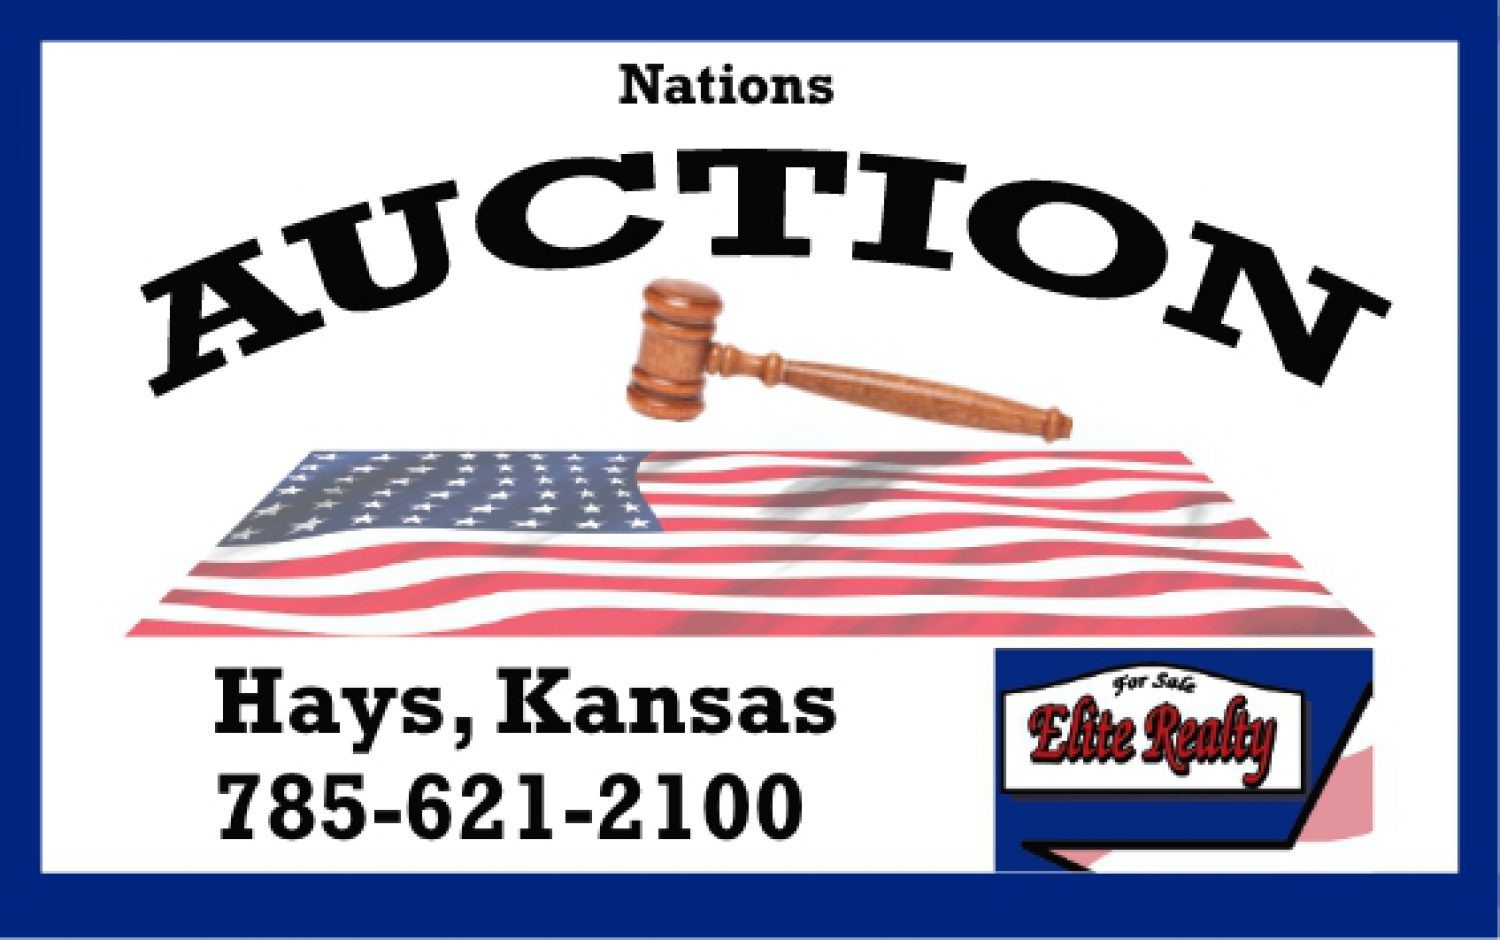 Nations Auction / Elite Realty-logo